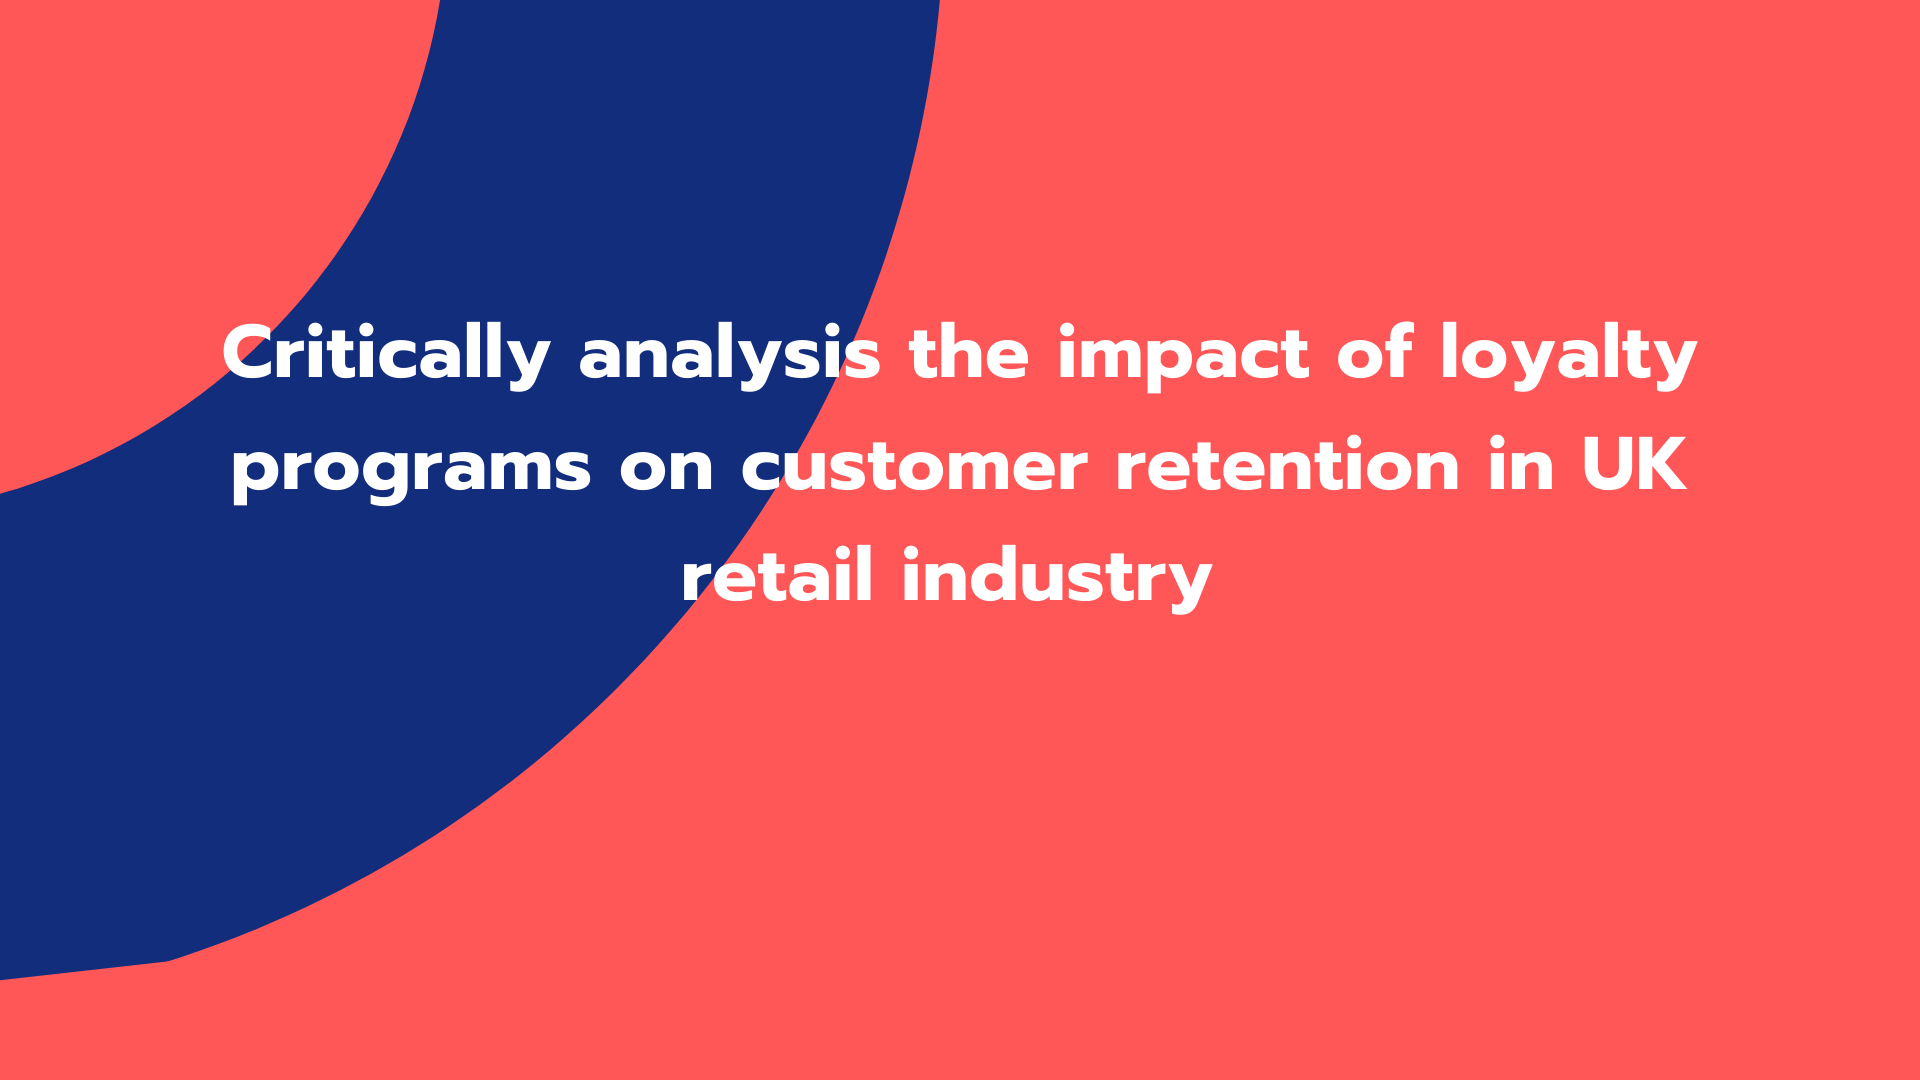 Critically analysis the impact of loyalty programs on customer retention in UK retail industry